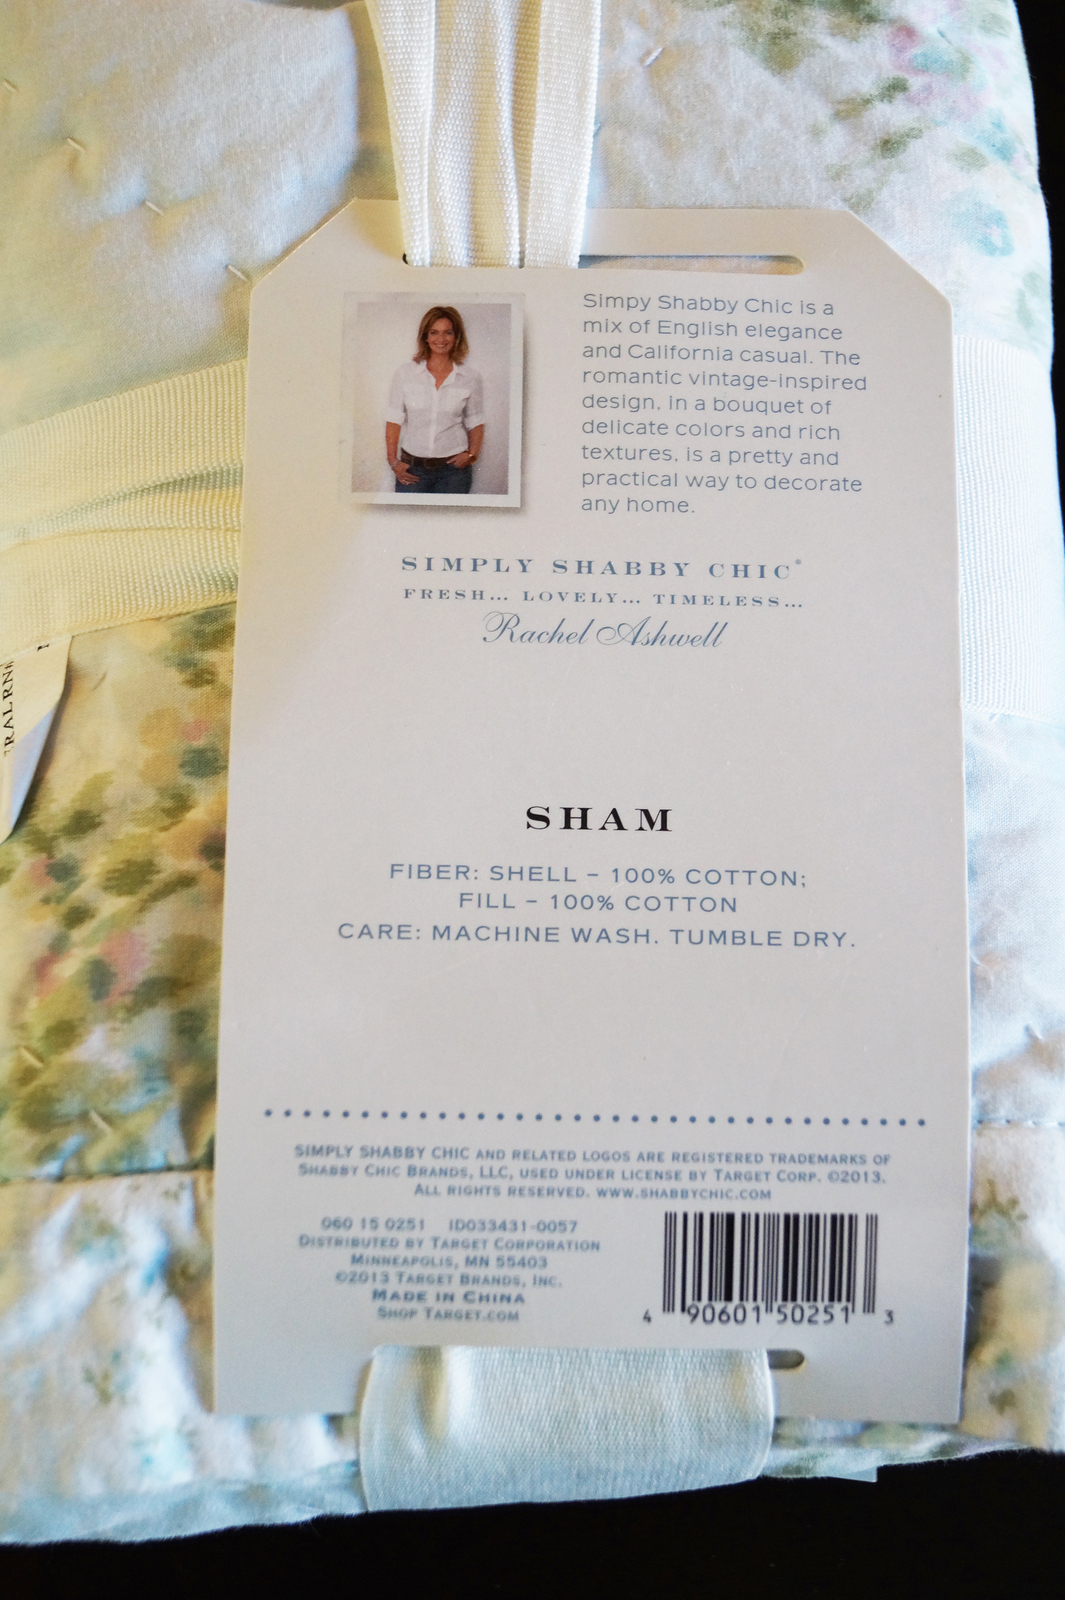 Simply Shabby Chic Blue Wallpaper Ikat Pillow Sham Pair - New in Package